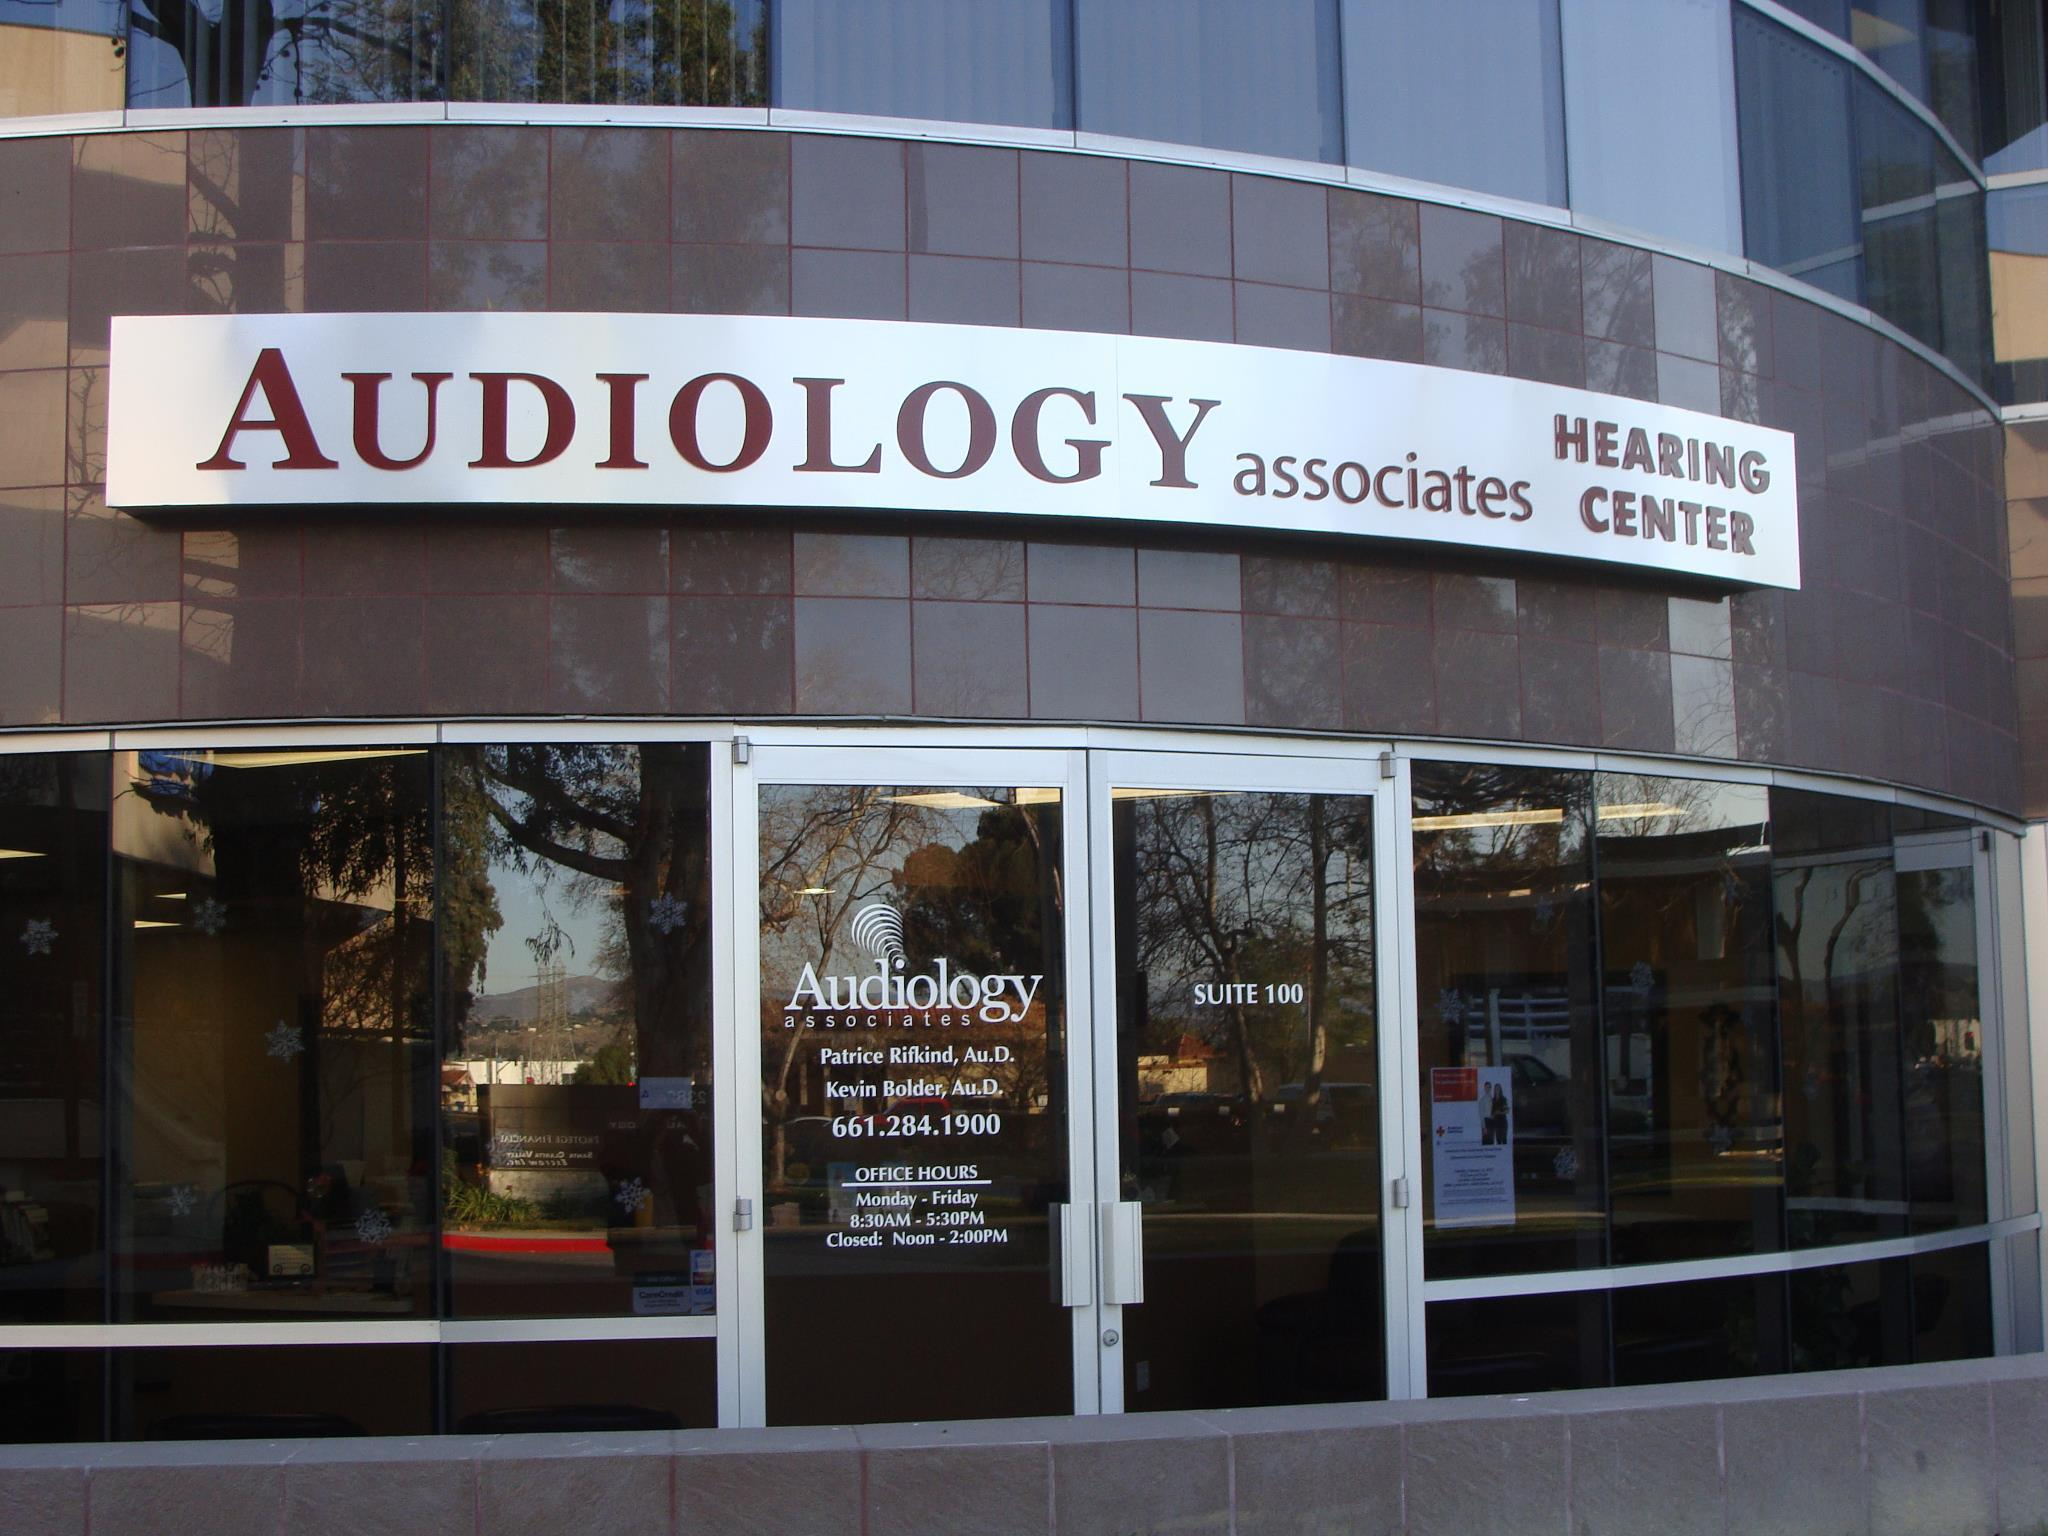 Audiology Associates image 1